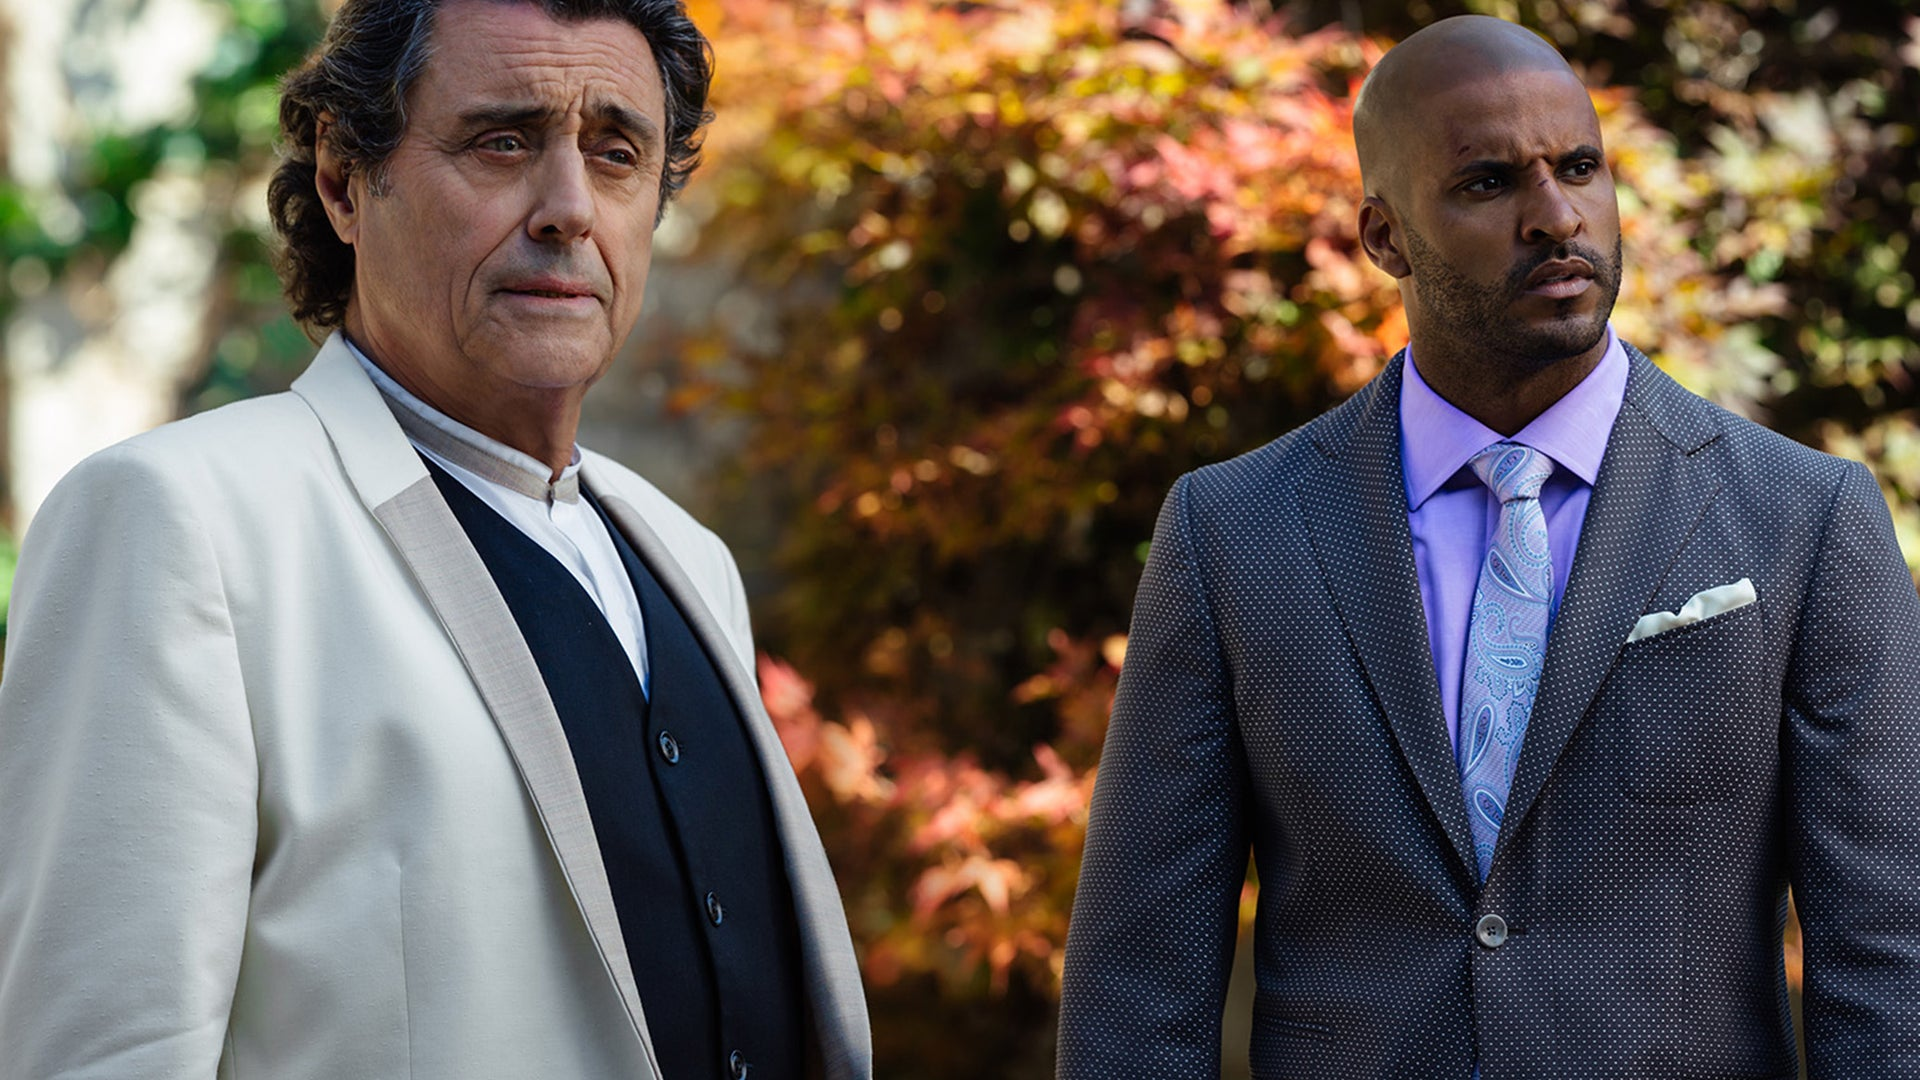 Ricky Whittle and Ian McShane, American Gods